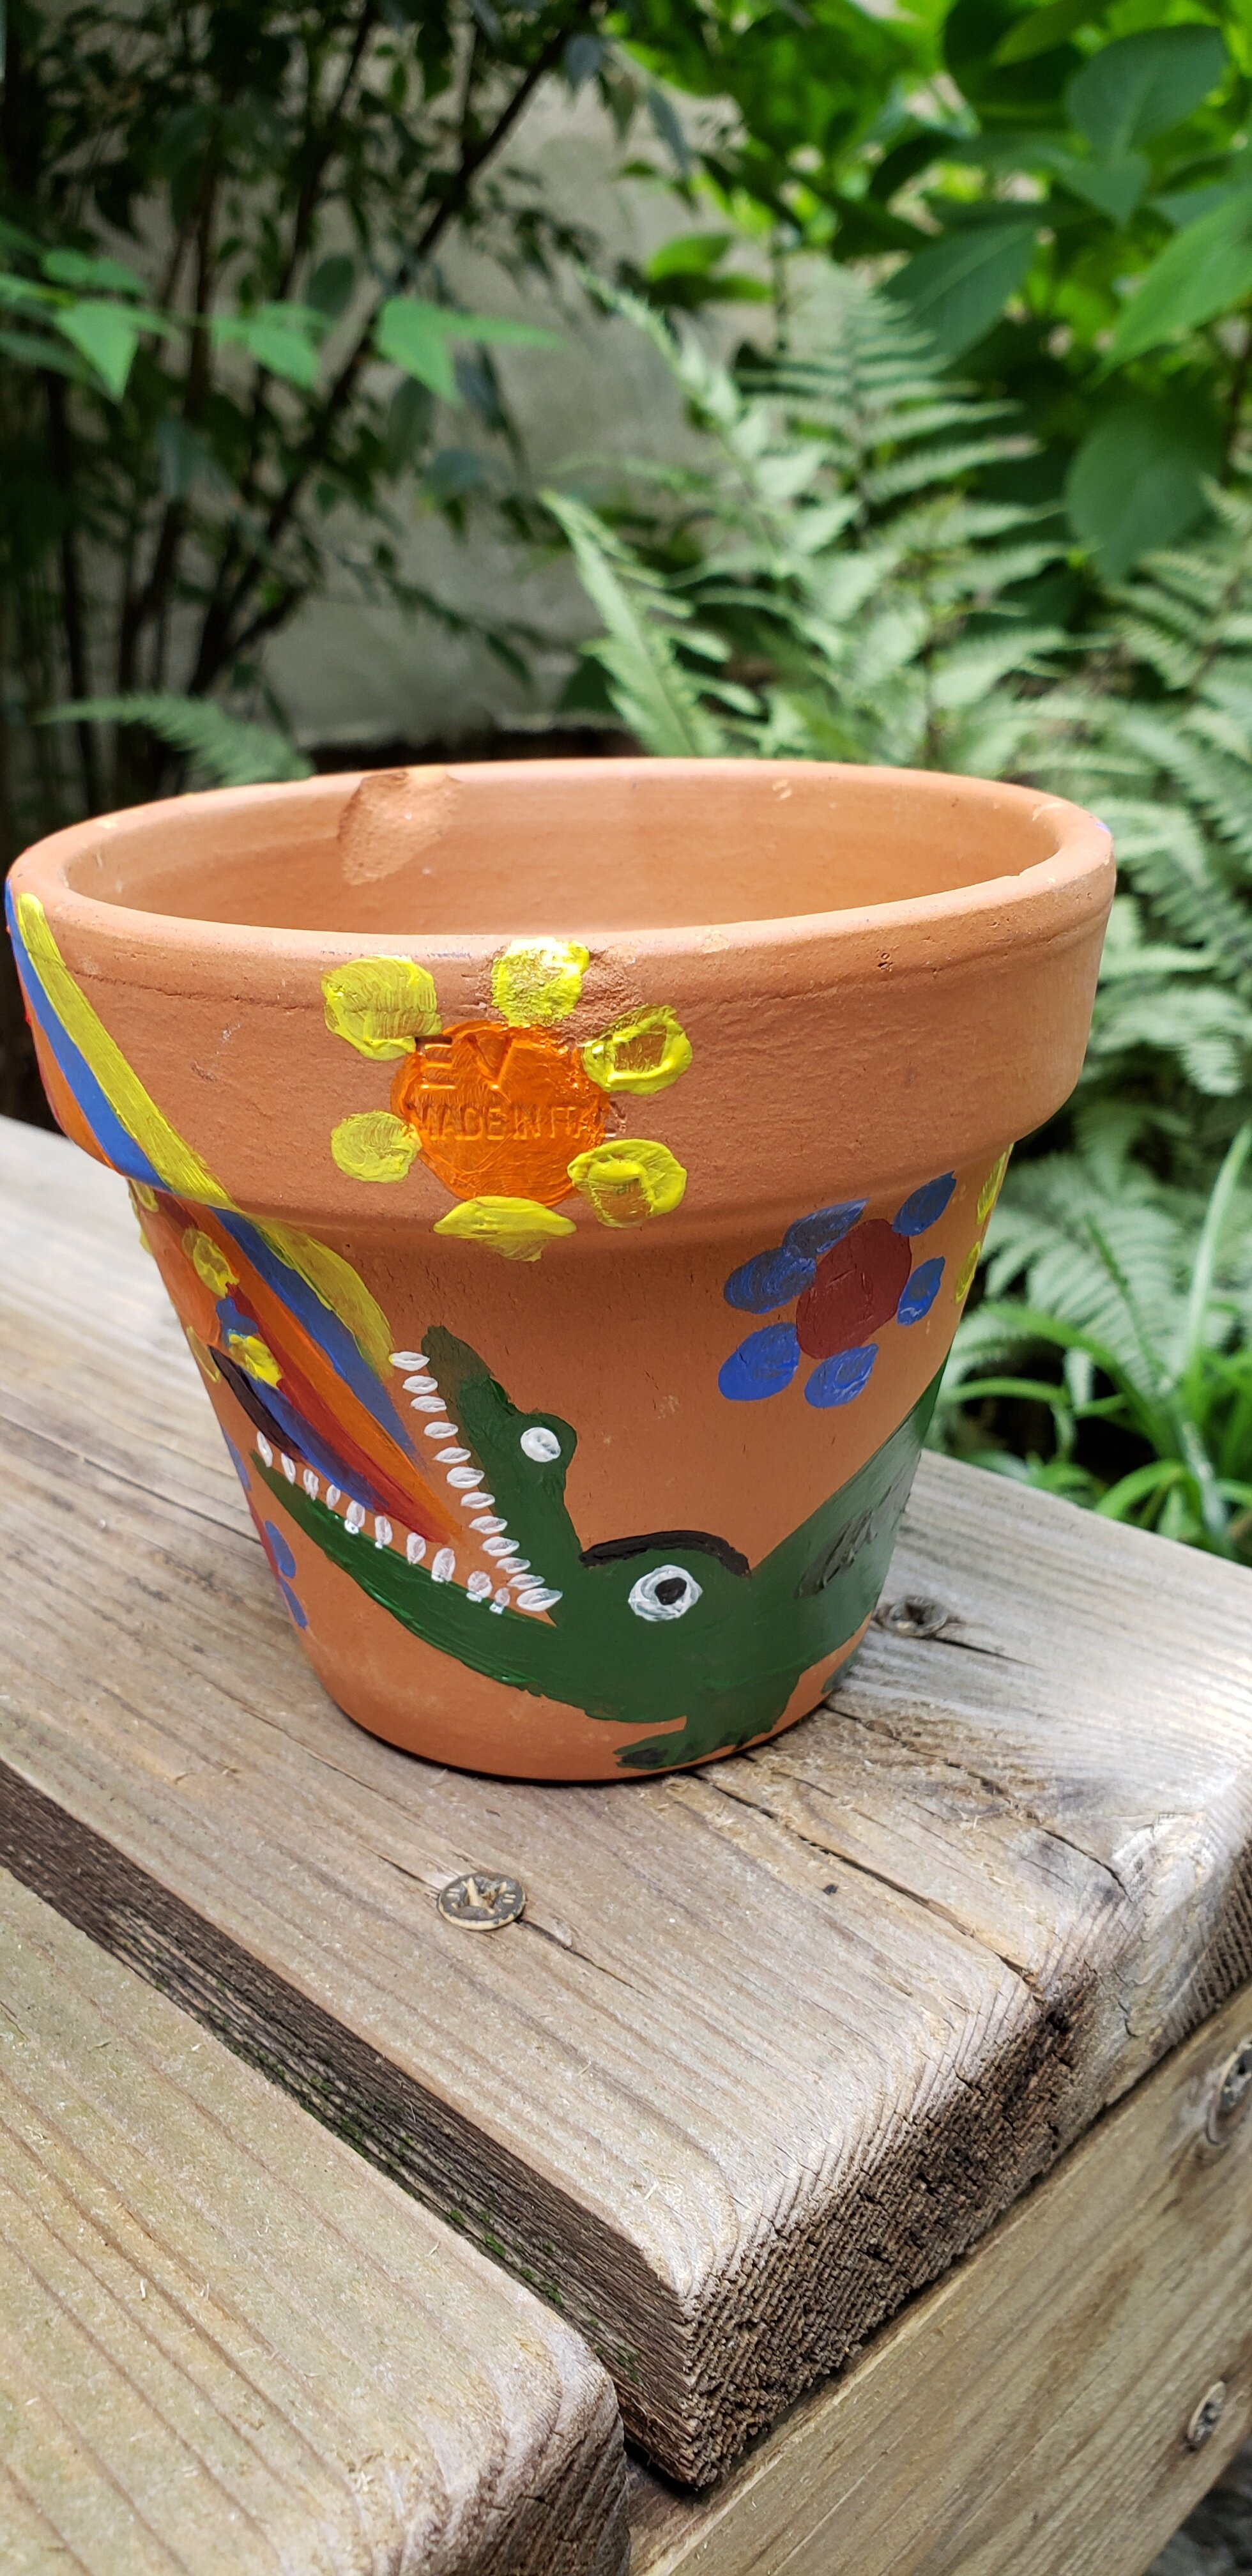 Terra Cotta flower pot with a painted green alligator. The alligator has a rainbow coming out of its mouth and flowers around it. The pot is sitting on a wooden bench and in the background is the greenery from a bush and ferns.